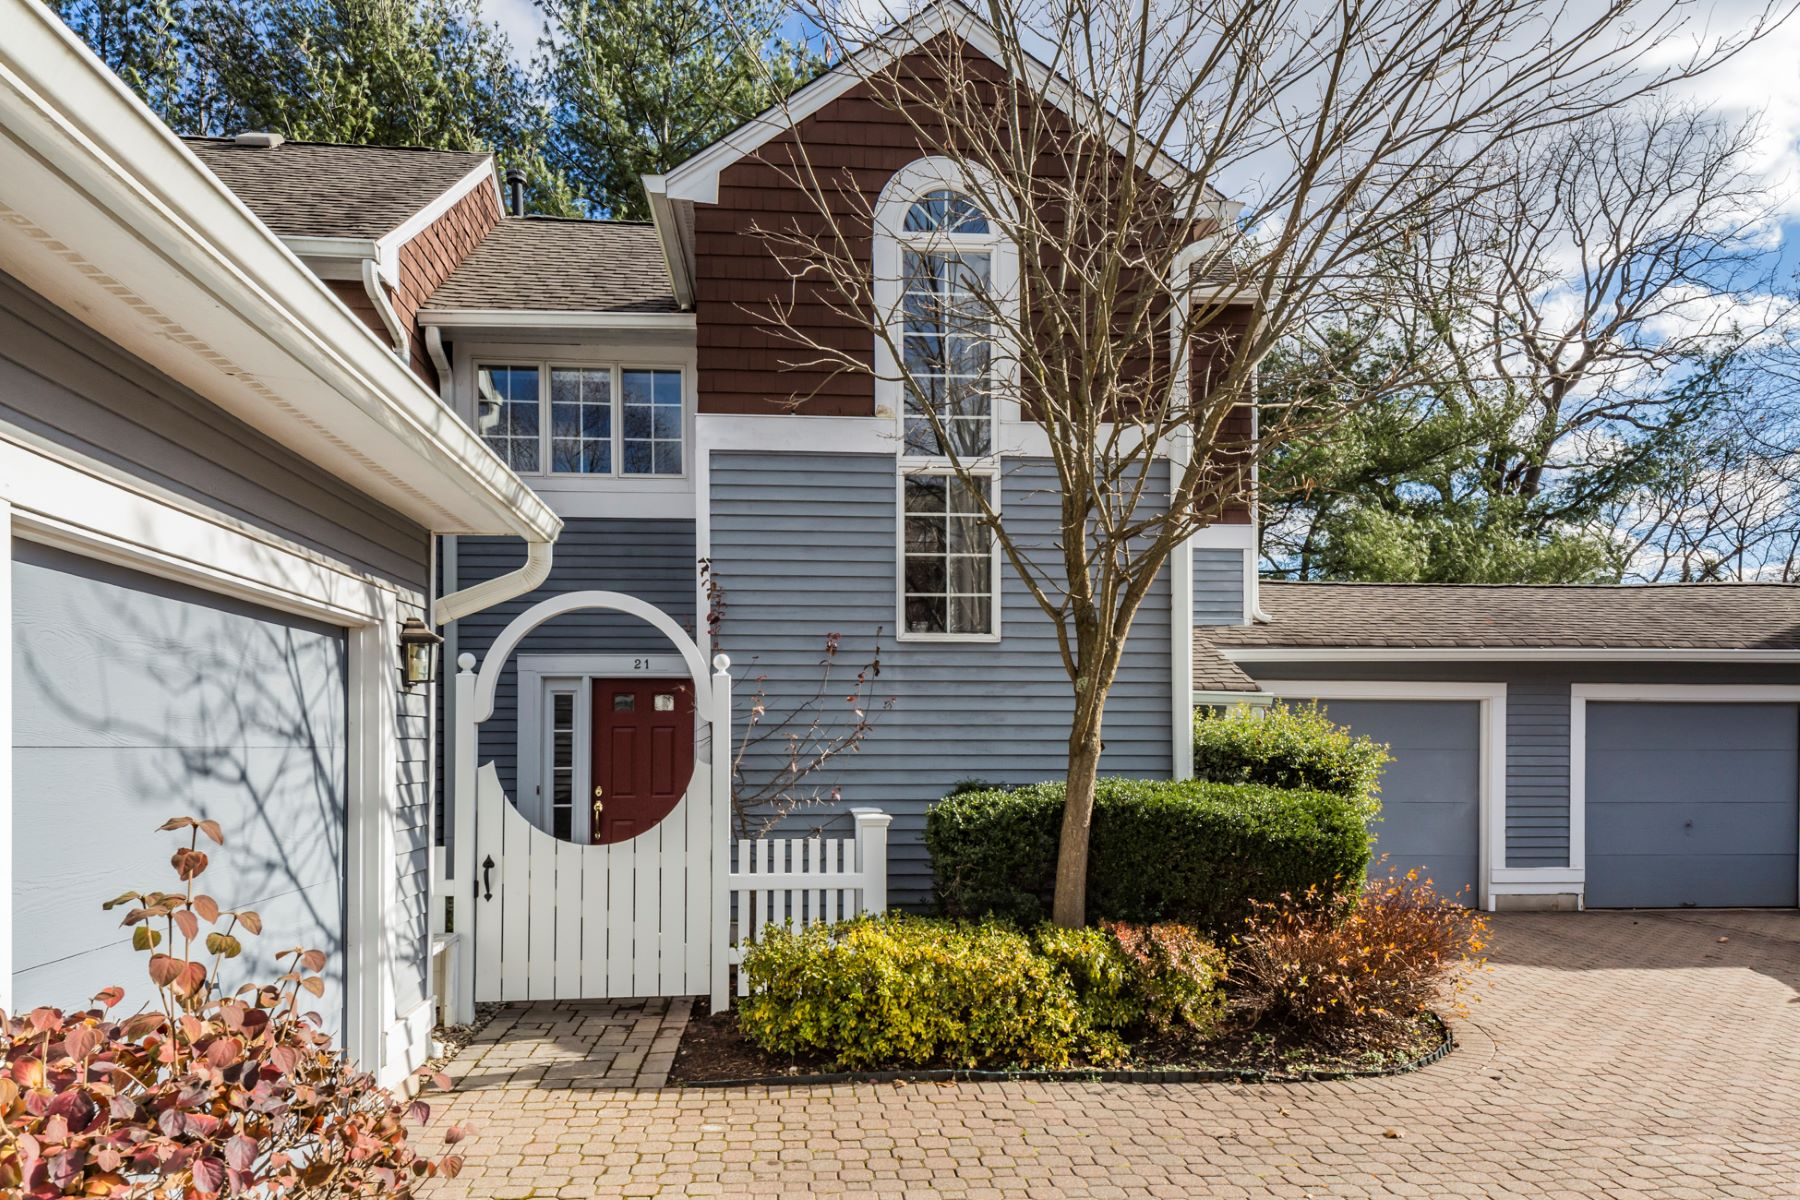 Townhouse for Sale at Designer Style In An Ideal Location 21 Railroad Place, Pennington, New Jersey 08534 United StatesMunicipality: Pennington Borough